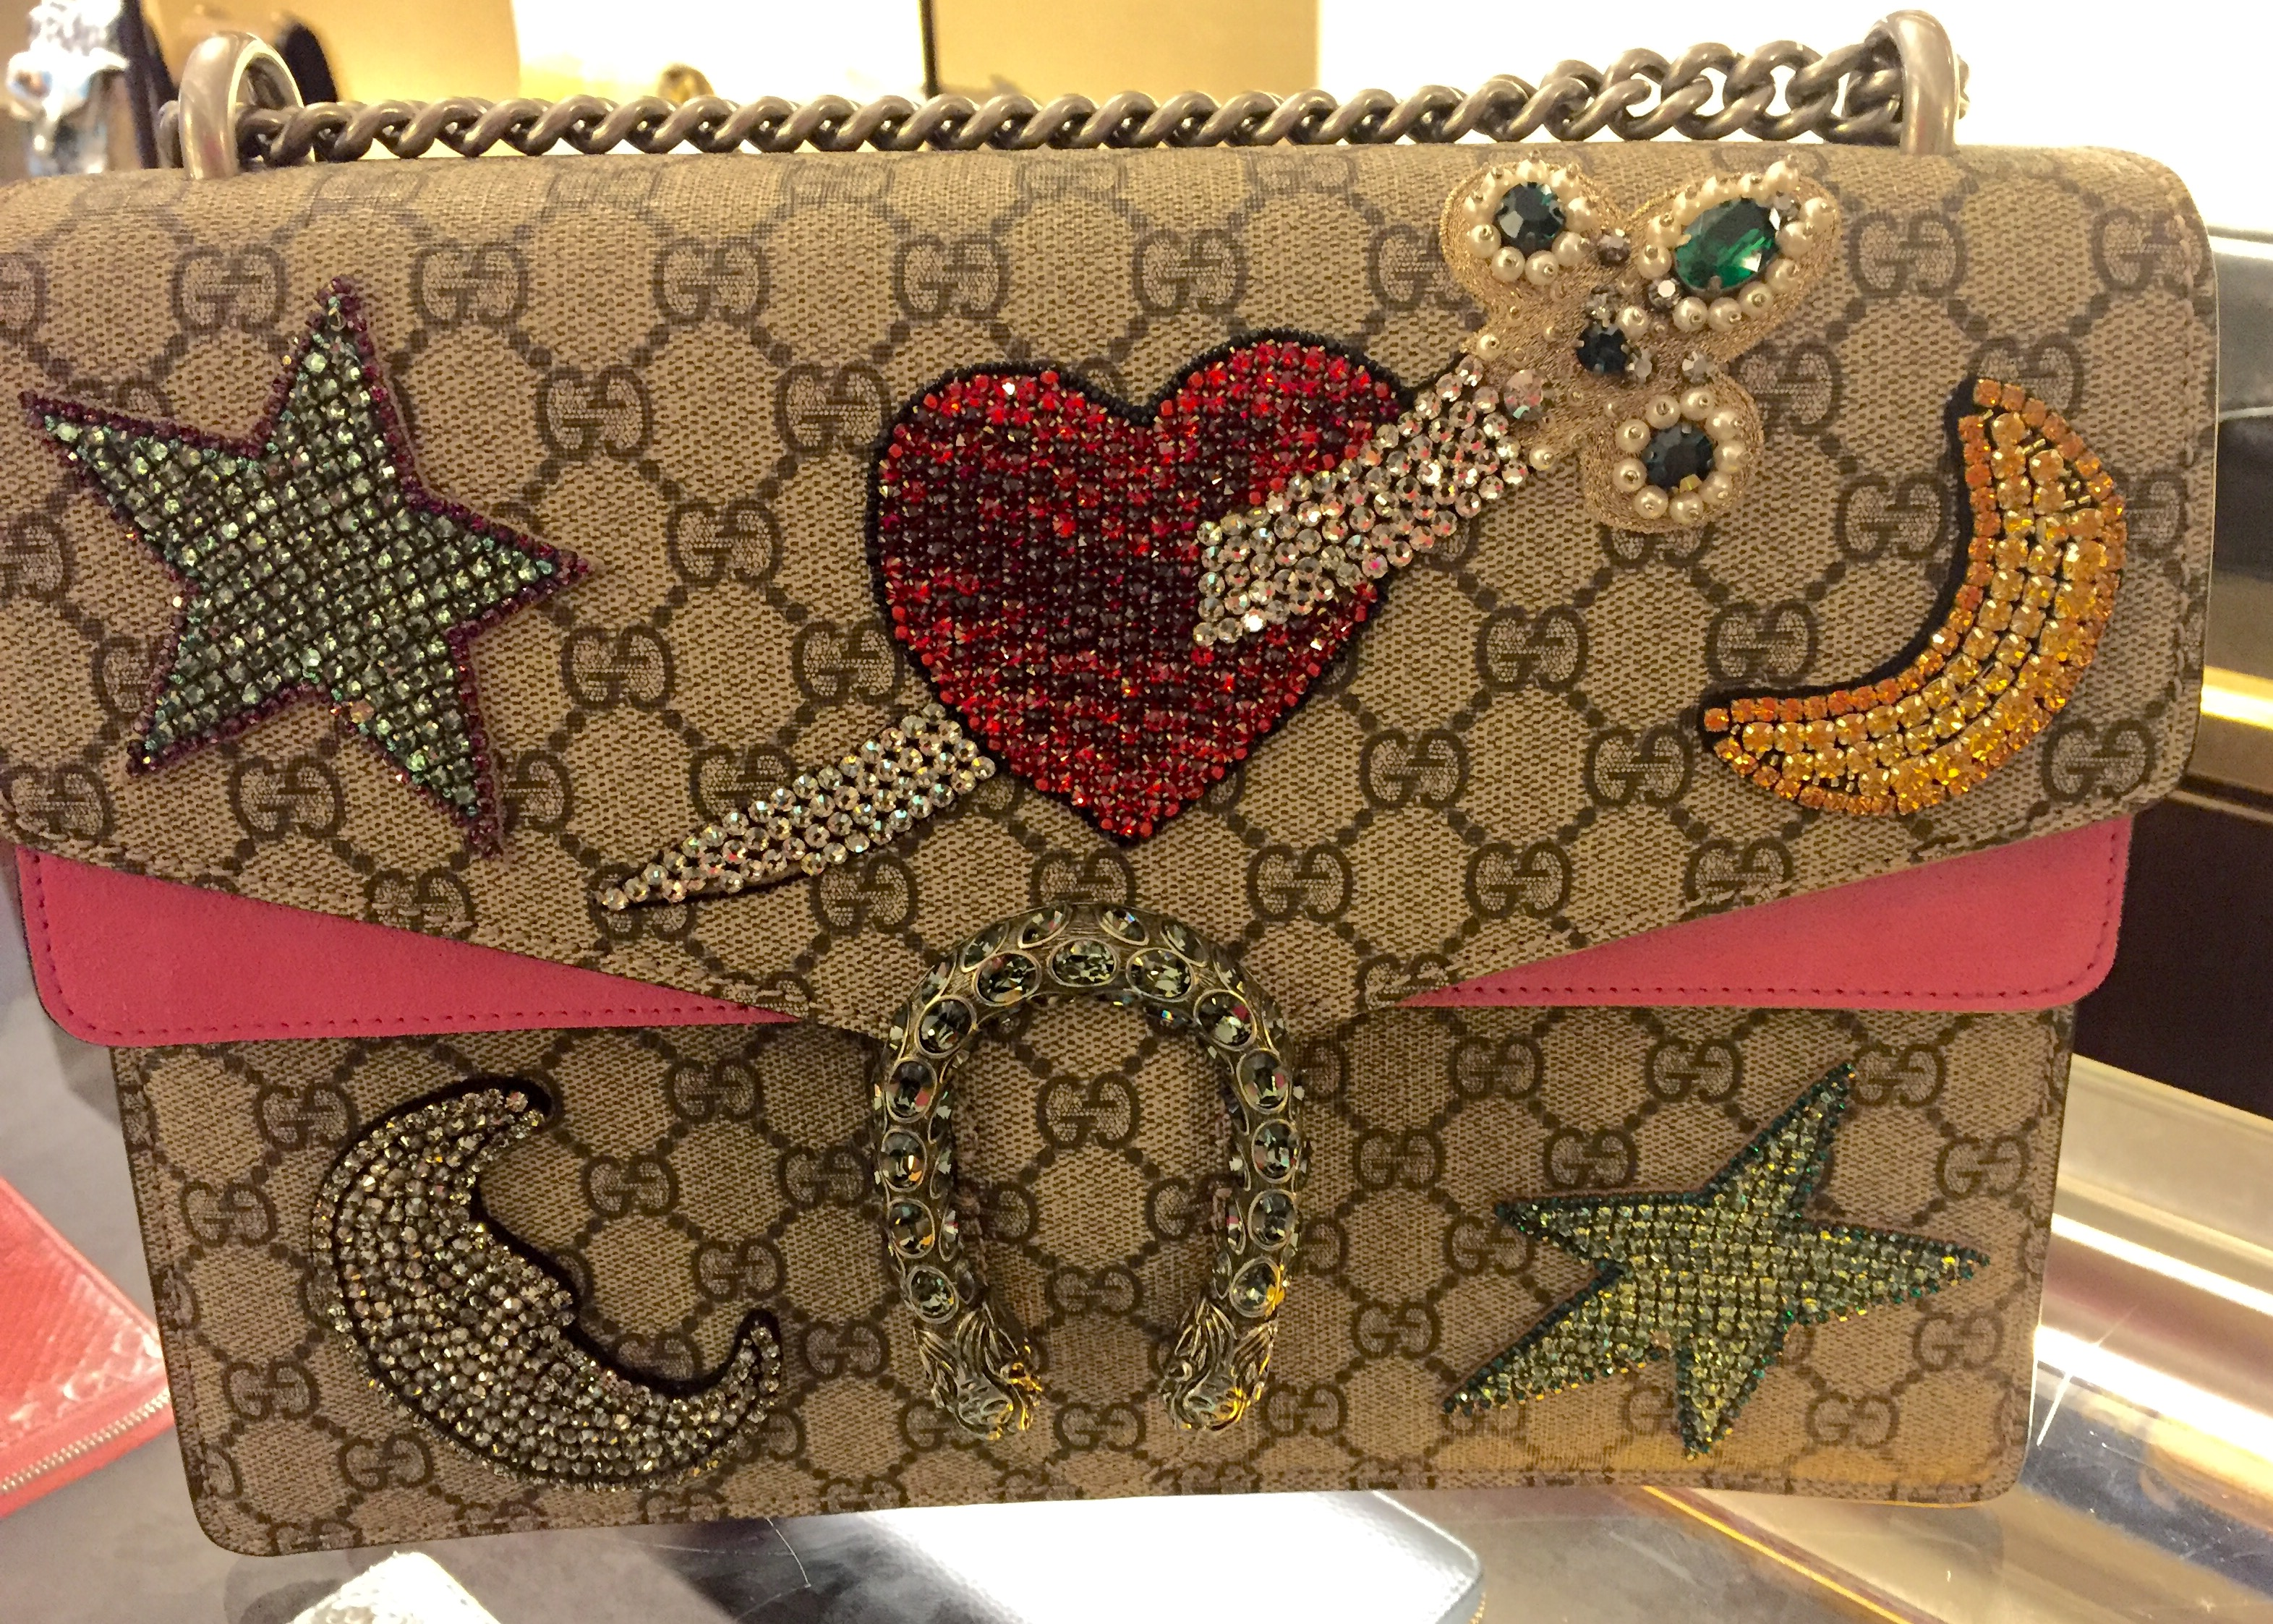 2b0f3bf6fd3 Gucci embellished Dionysus bag with colored stones and rhinestone appliqués